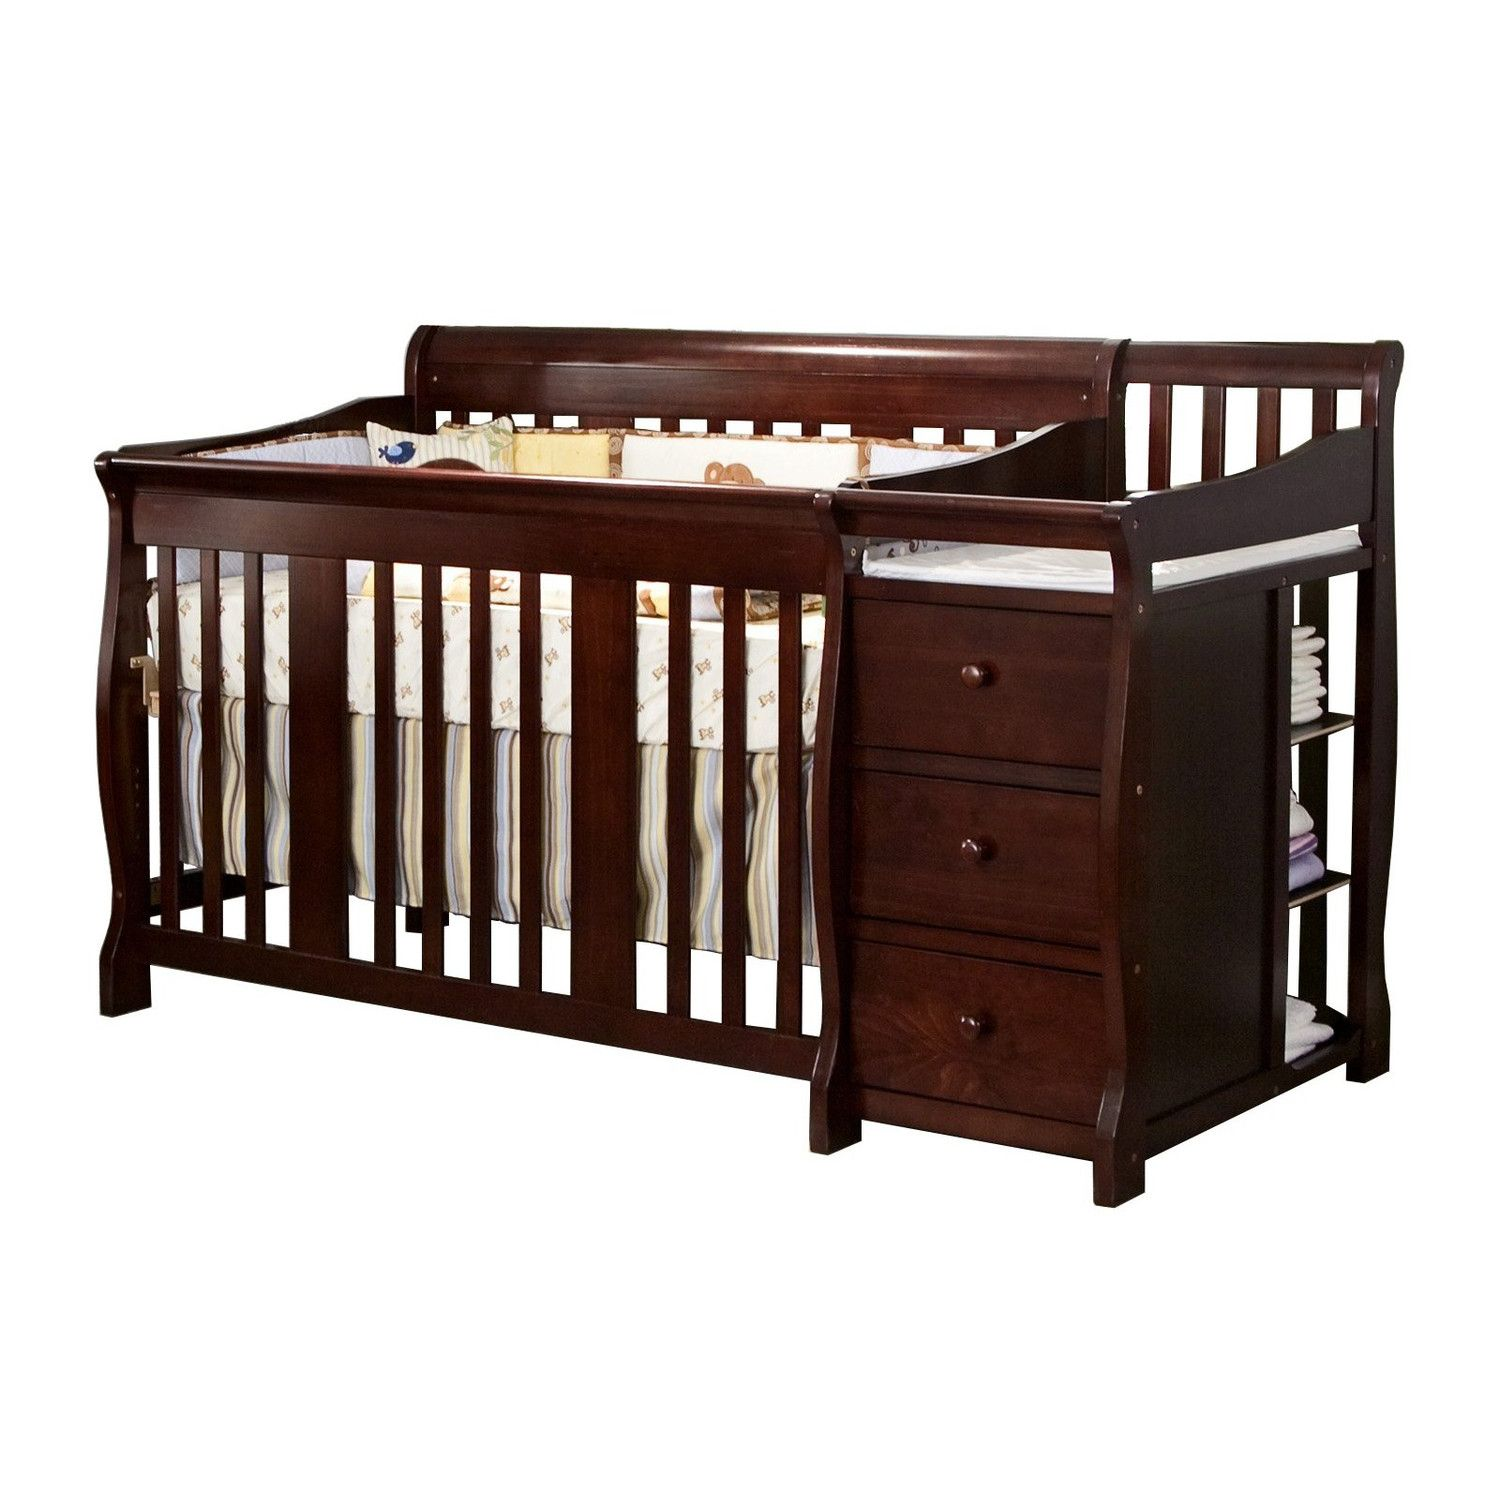 Crib Changing Table Dresser Combo Cribs Baby Toddler Bed Convertible Crib